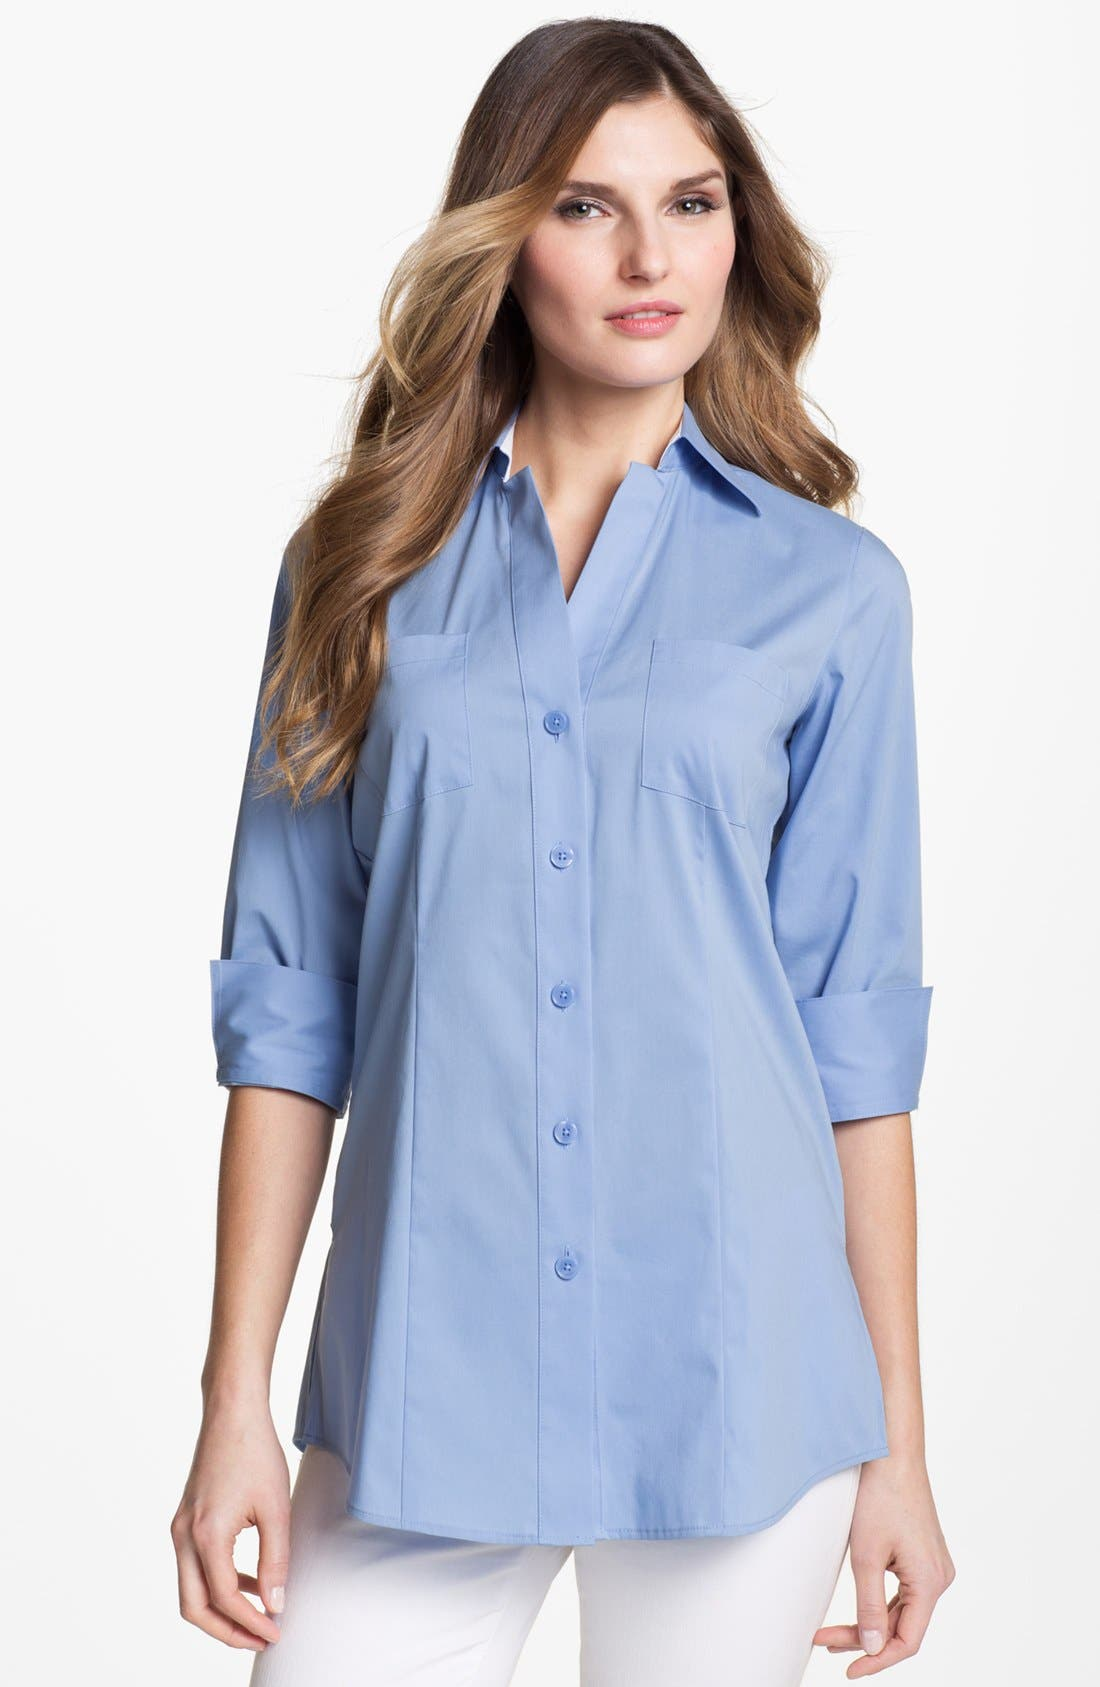 Alternate Image 1 Selected - Foxcroft Three Quarter Sleeve Shaped Shirt